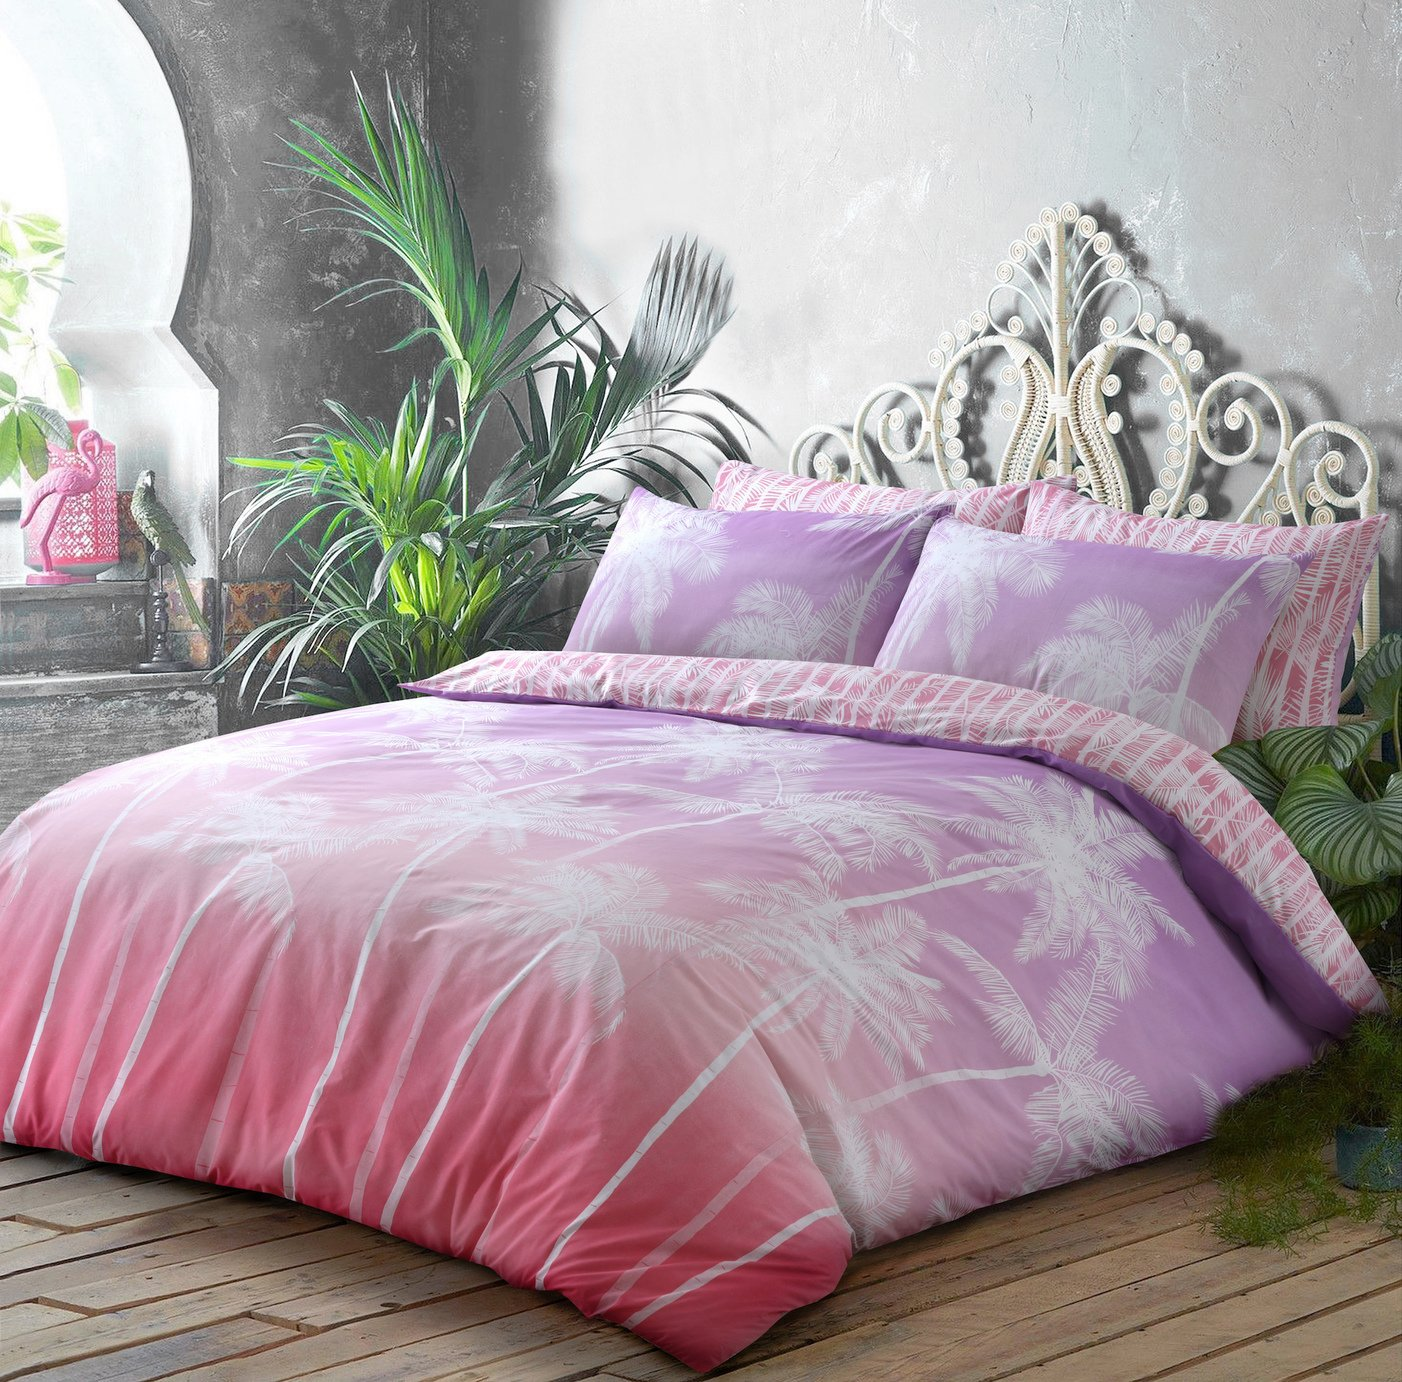 Argos Home Pink Ombre Palm Bedding Set - Kingsize